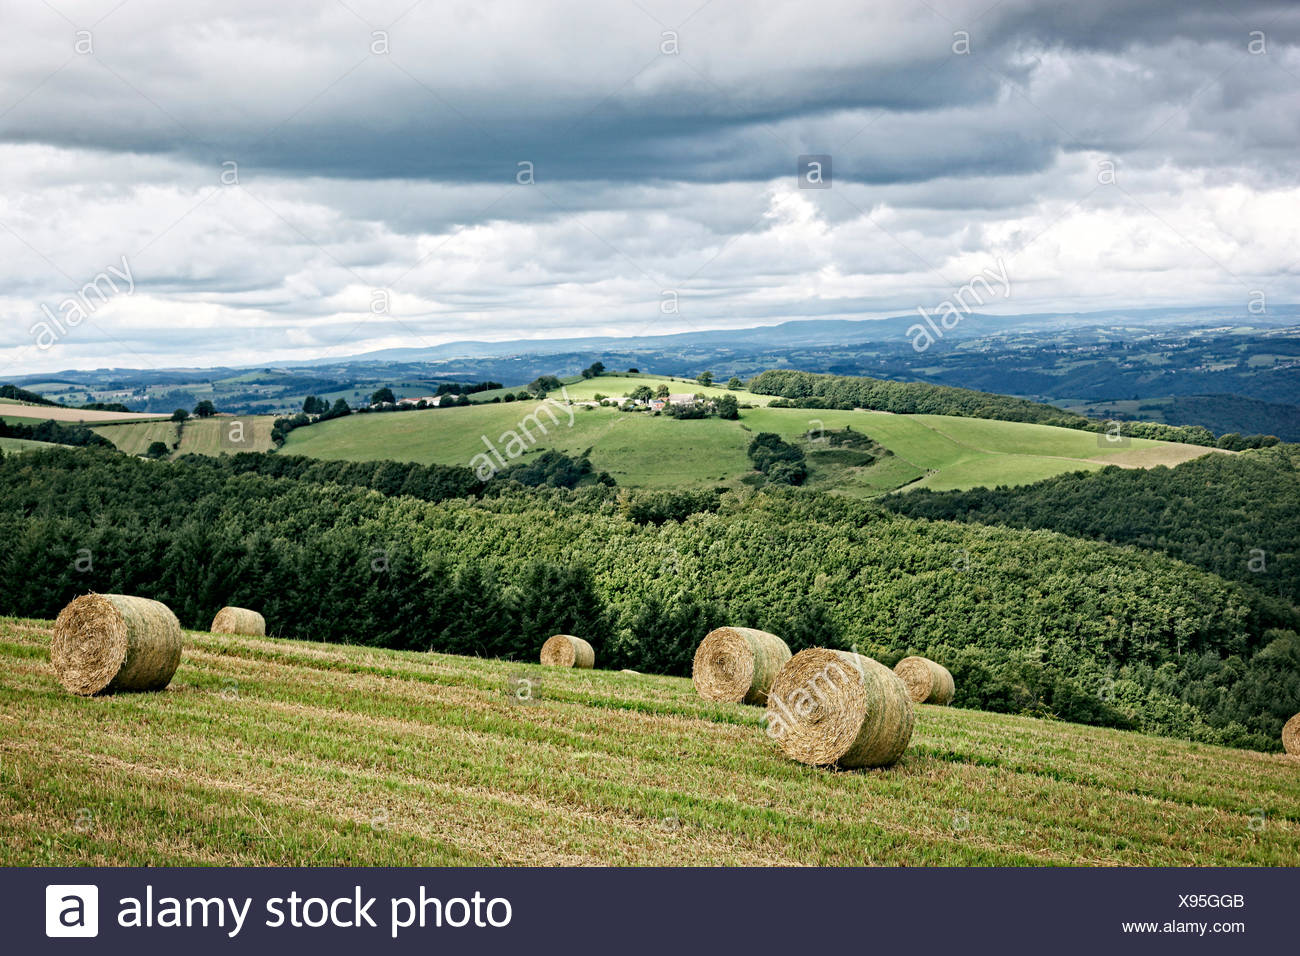 Cantal landscape in Auvergne, France. Stock Photo